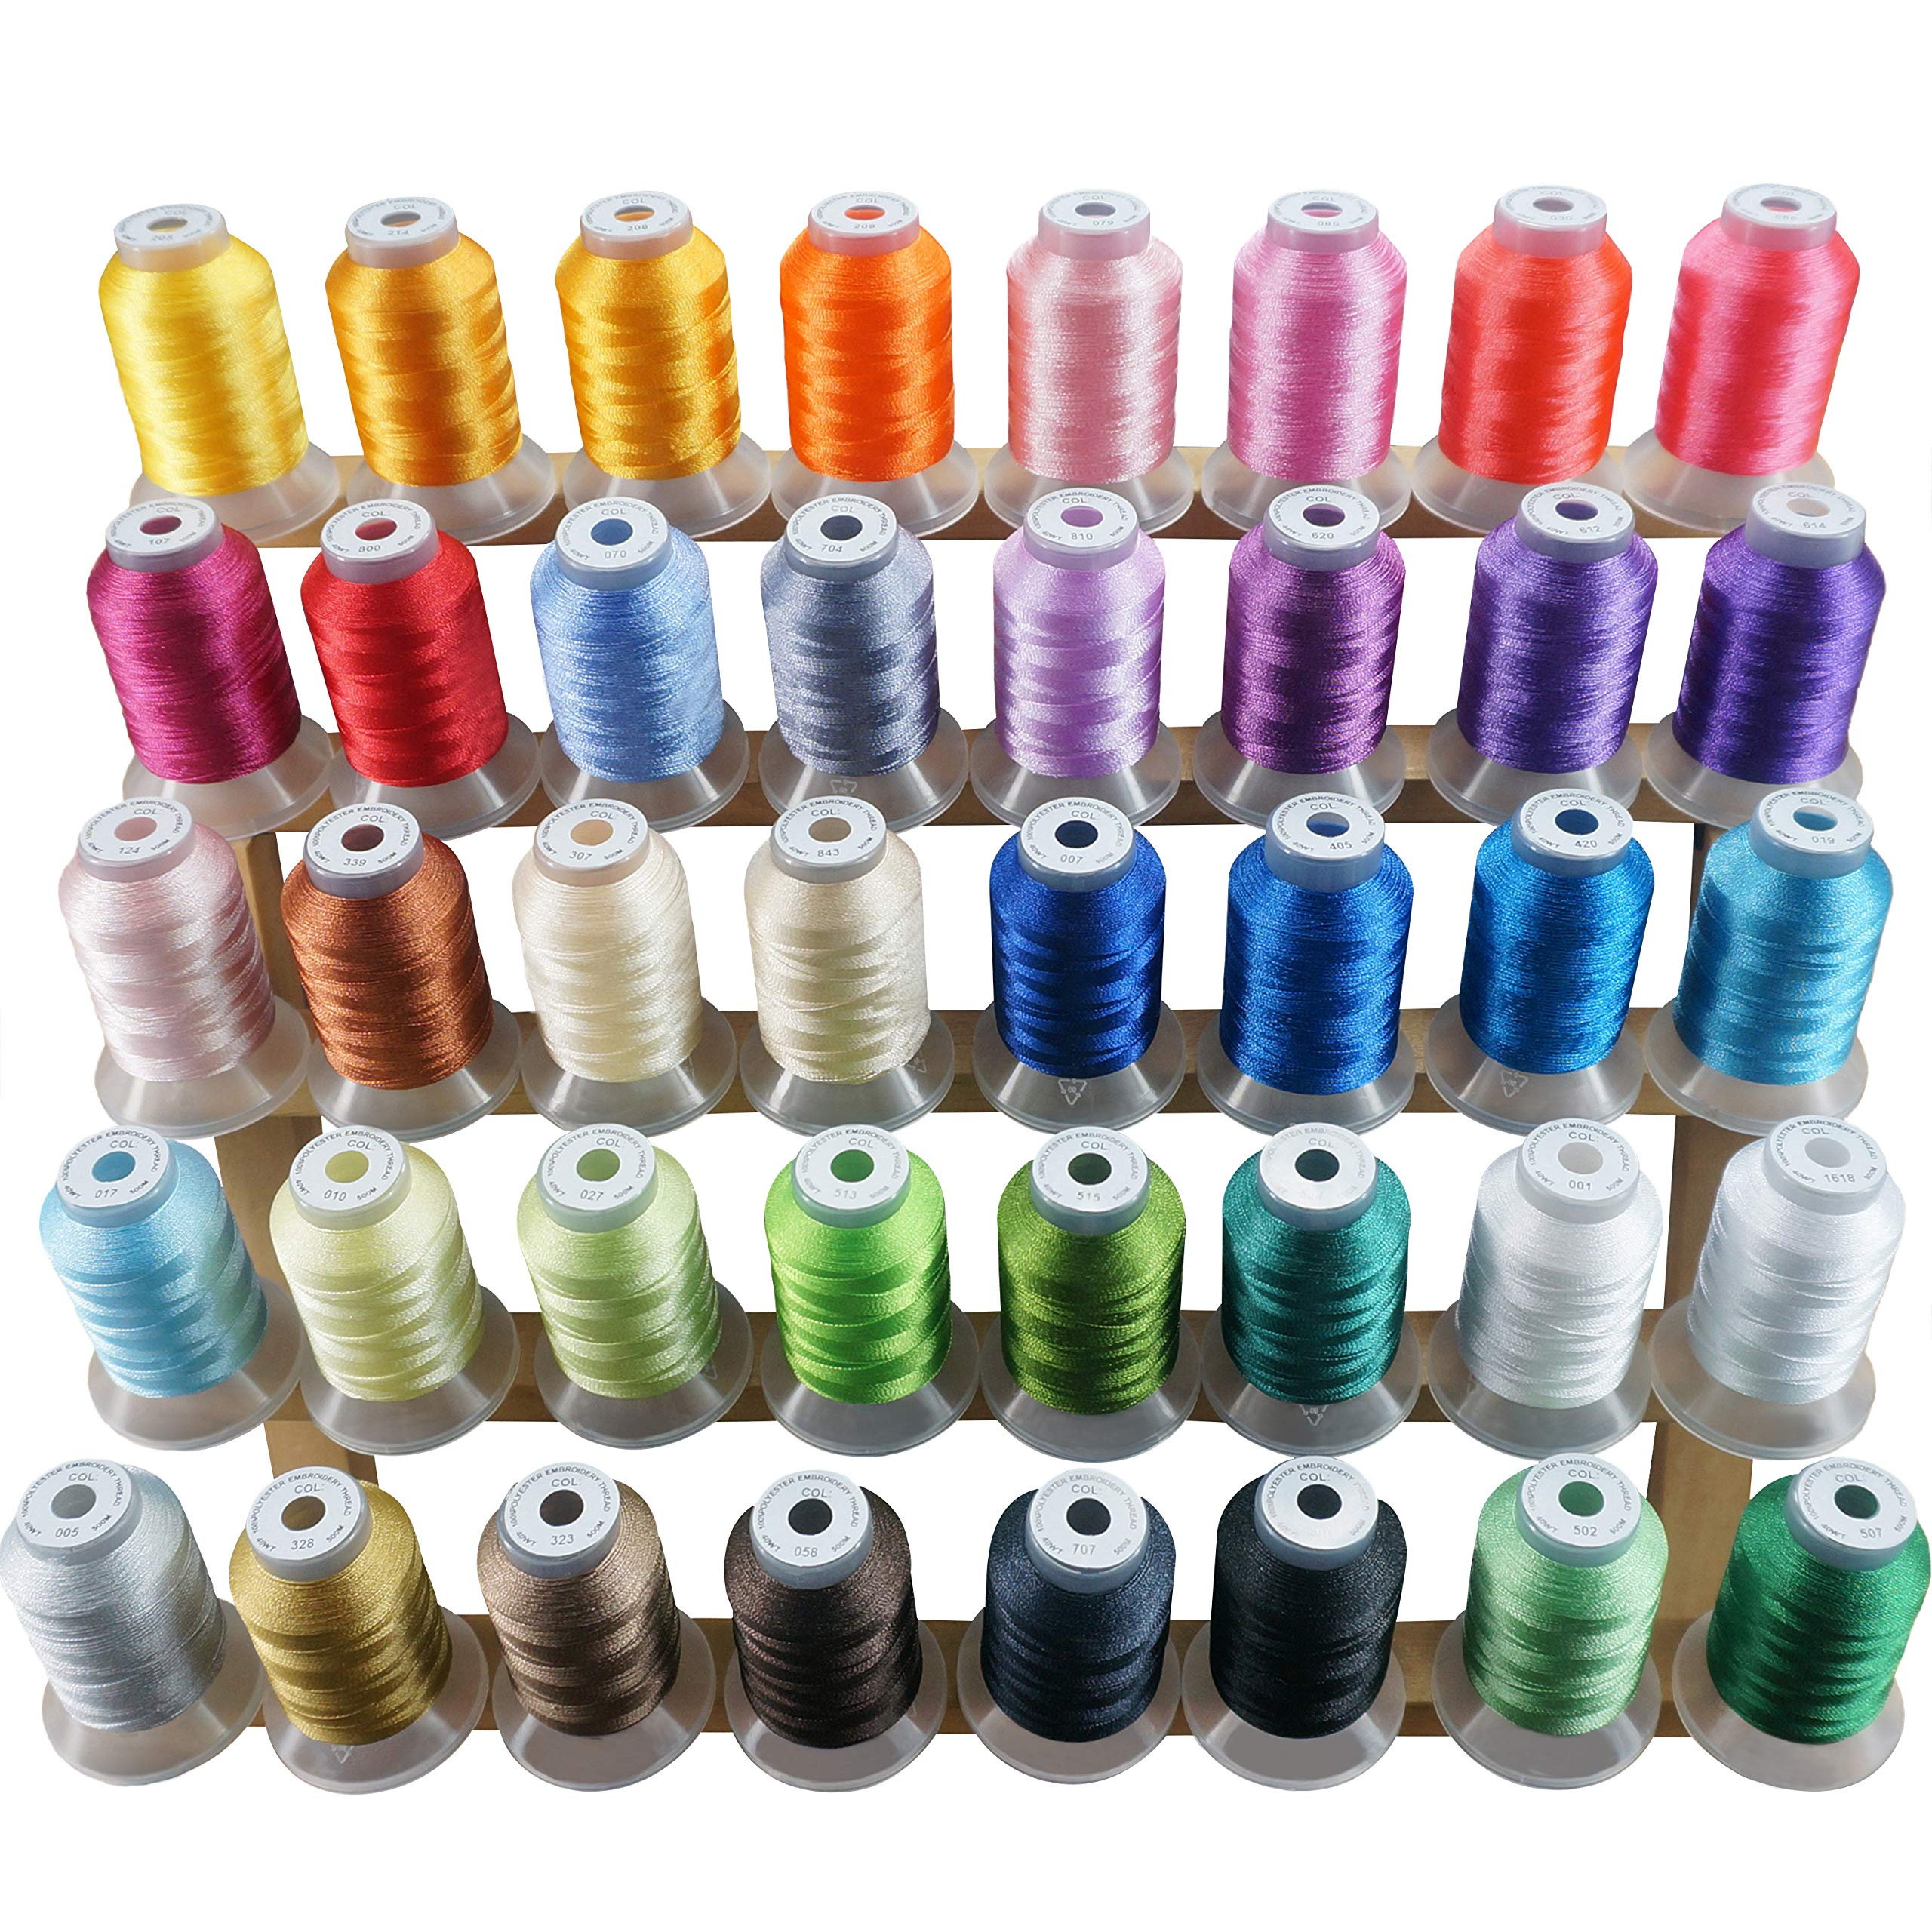 New brothread 40 Brother Colors Polyester Embroidery Machine Thread Kit 500M (550Y) Each Spool for Brother Babylock Janome Singer Pfaff Husqvarna Bernina Embroidery and Sewing Machines by New brothread